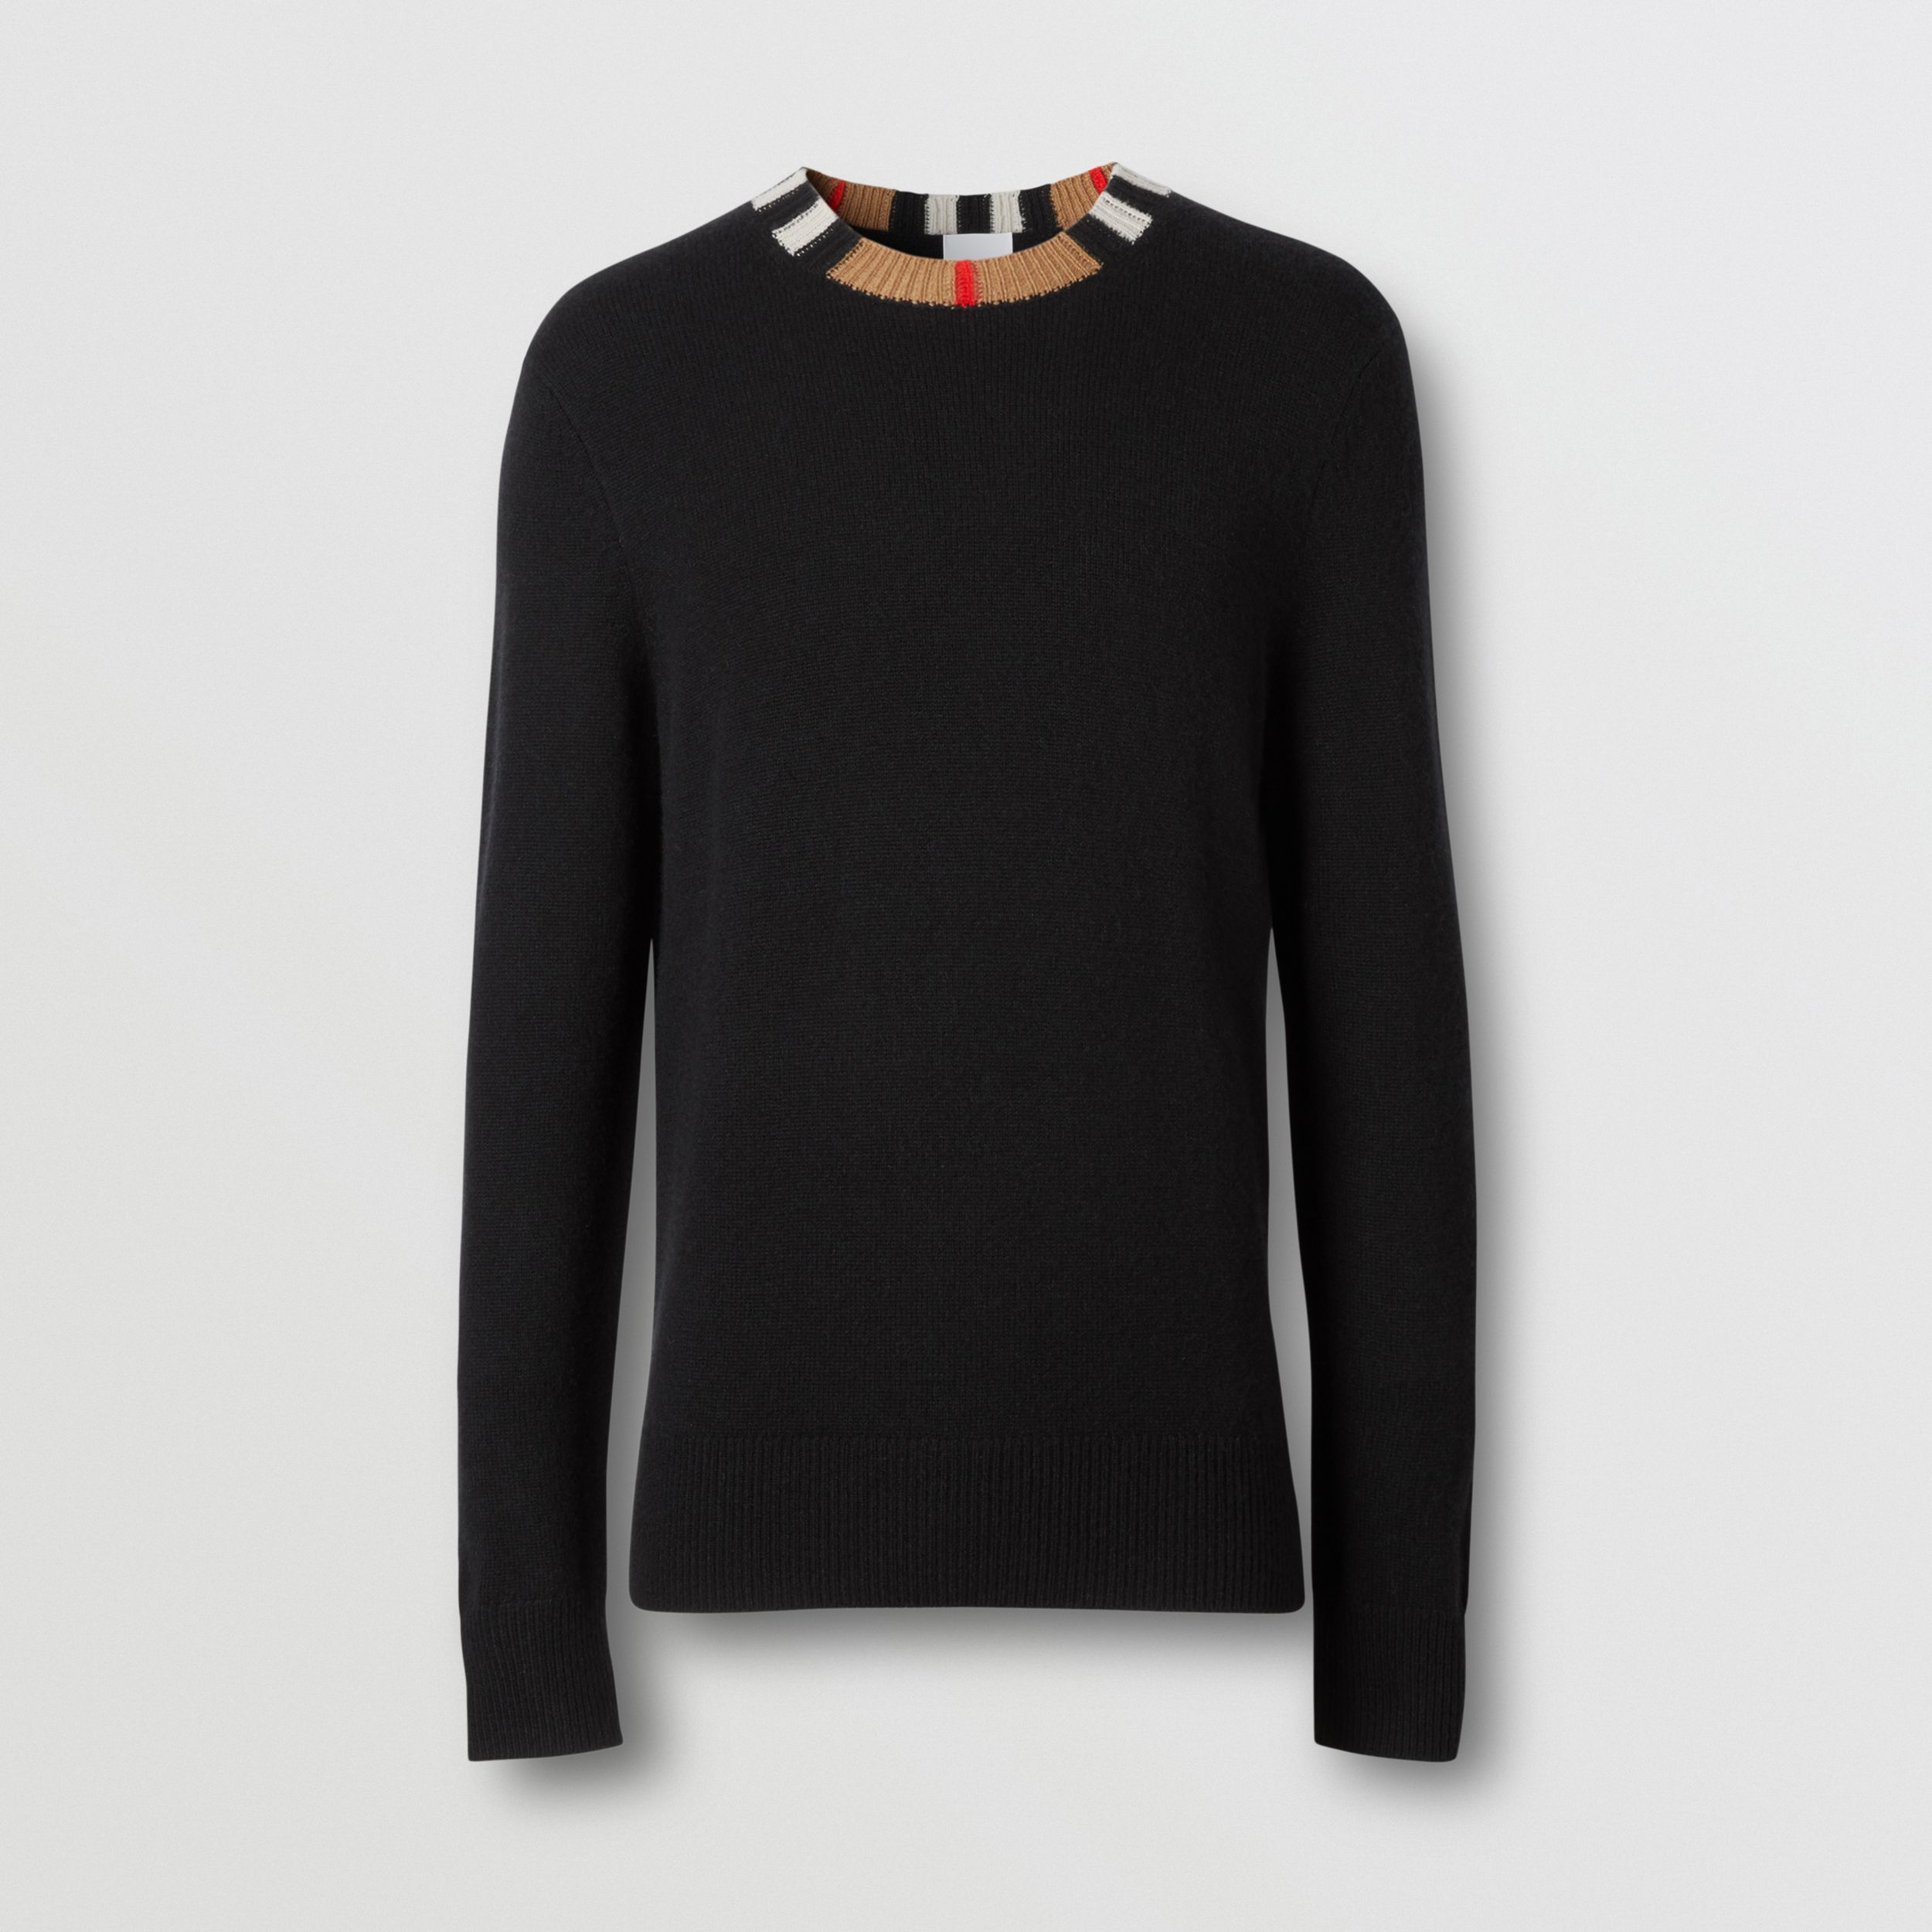 Icon Stripe Trim Cashmere Sweater in Black - Men | Burberry - 4